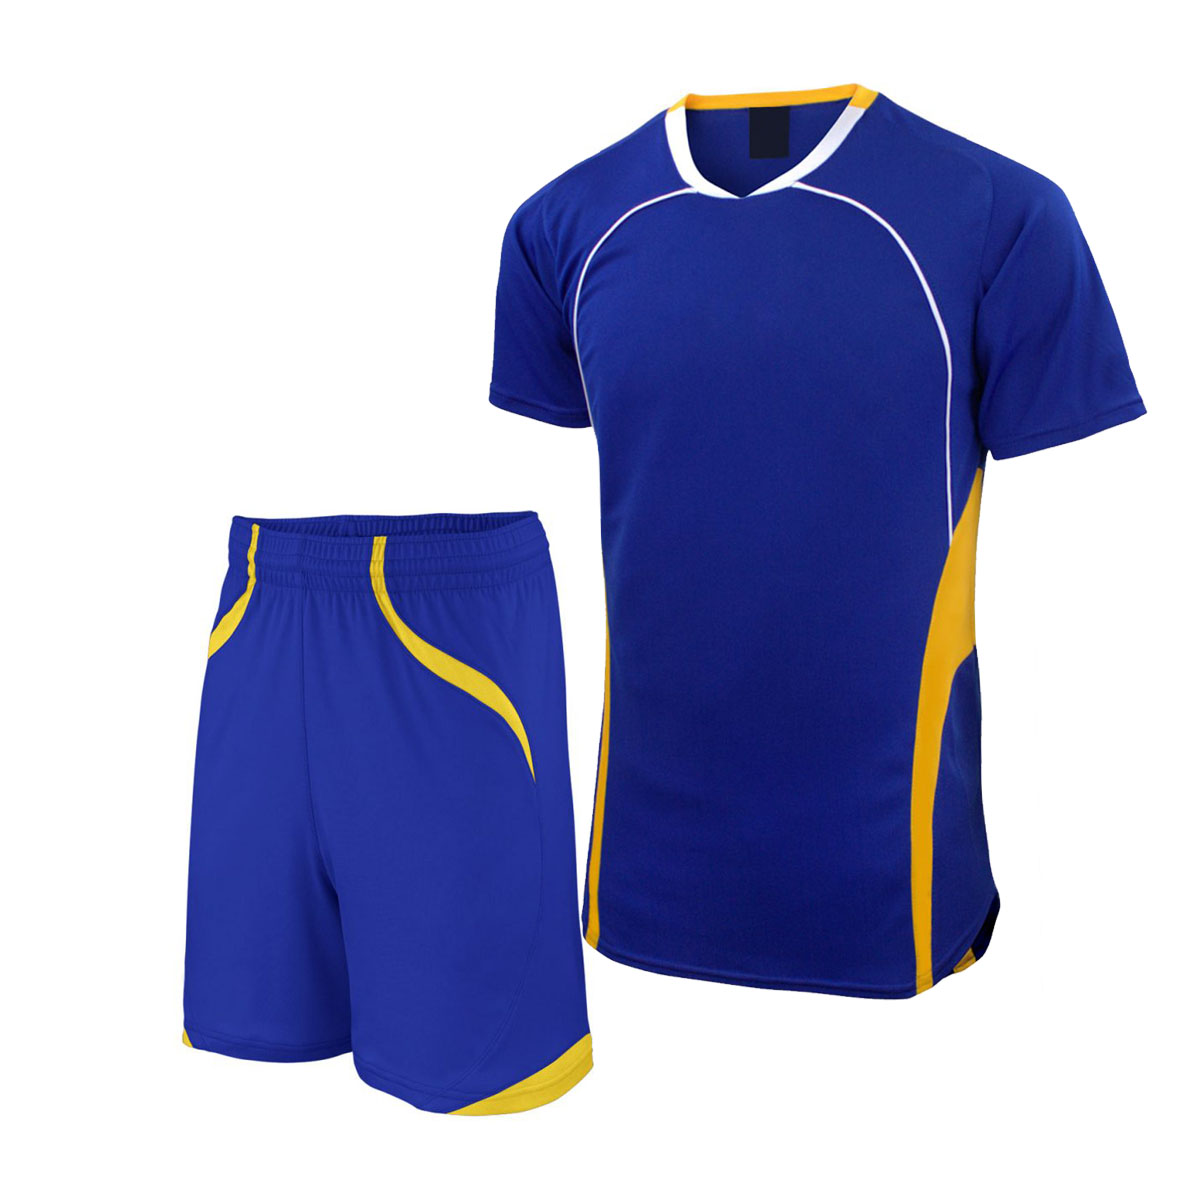 803376a46 Makers and Suppliers of Soccer Uniforms in Sialkot Pakistan